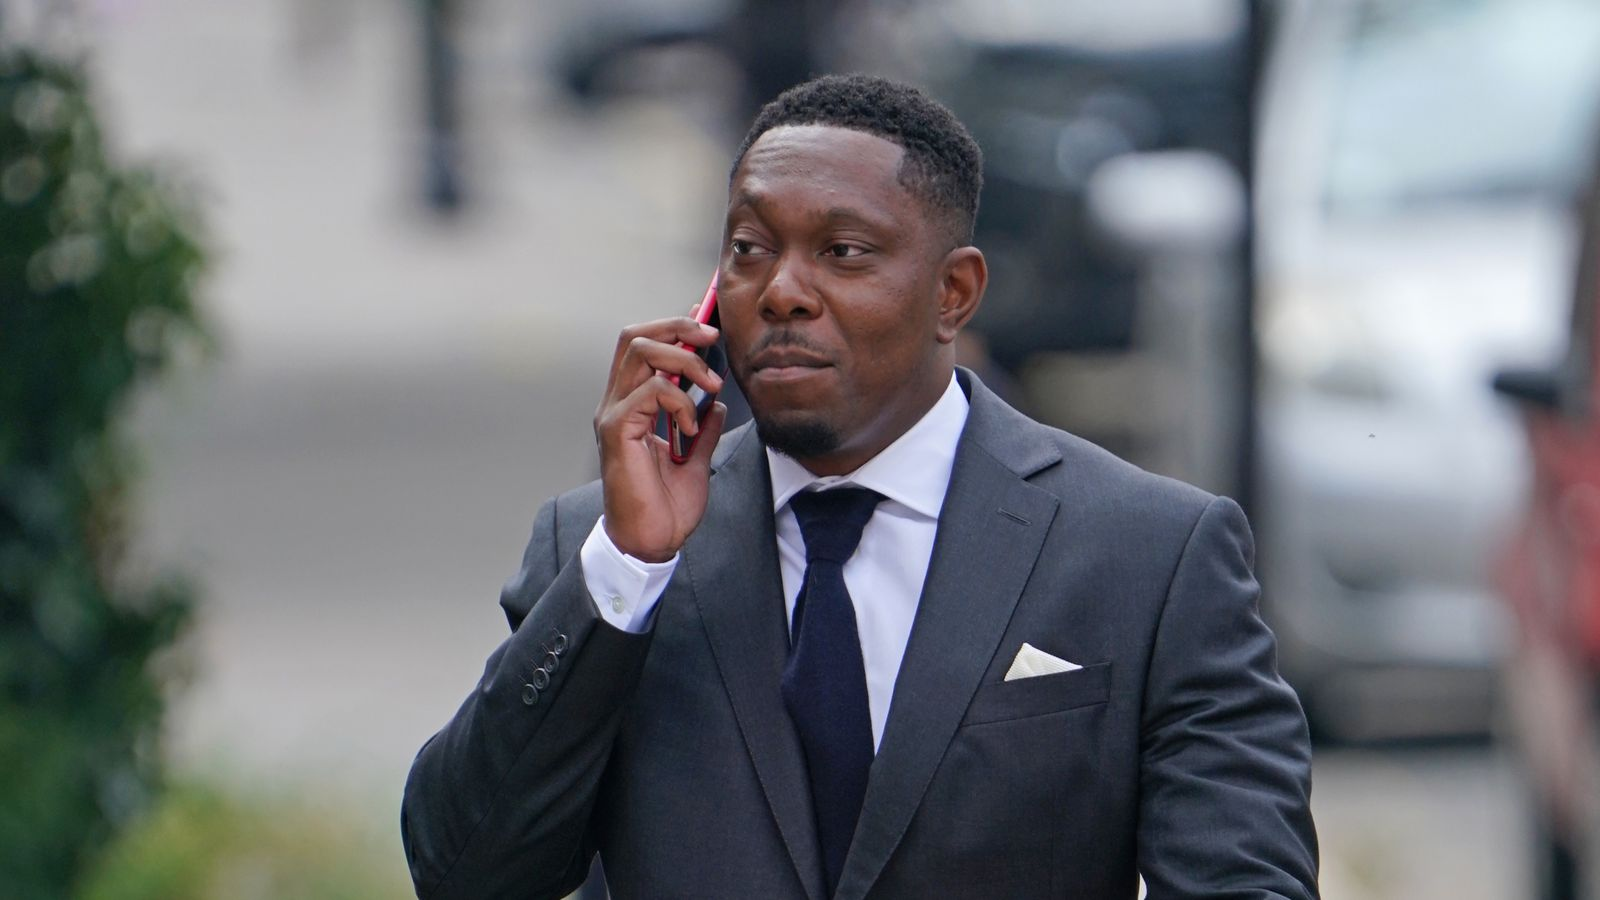 Dizzee Rascal: Rapper denies assaulting woman at house in south London